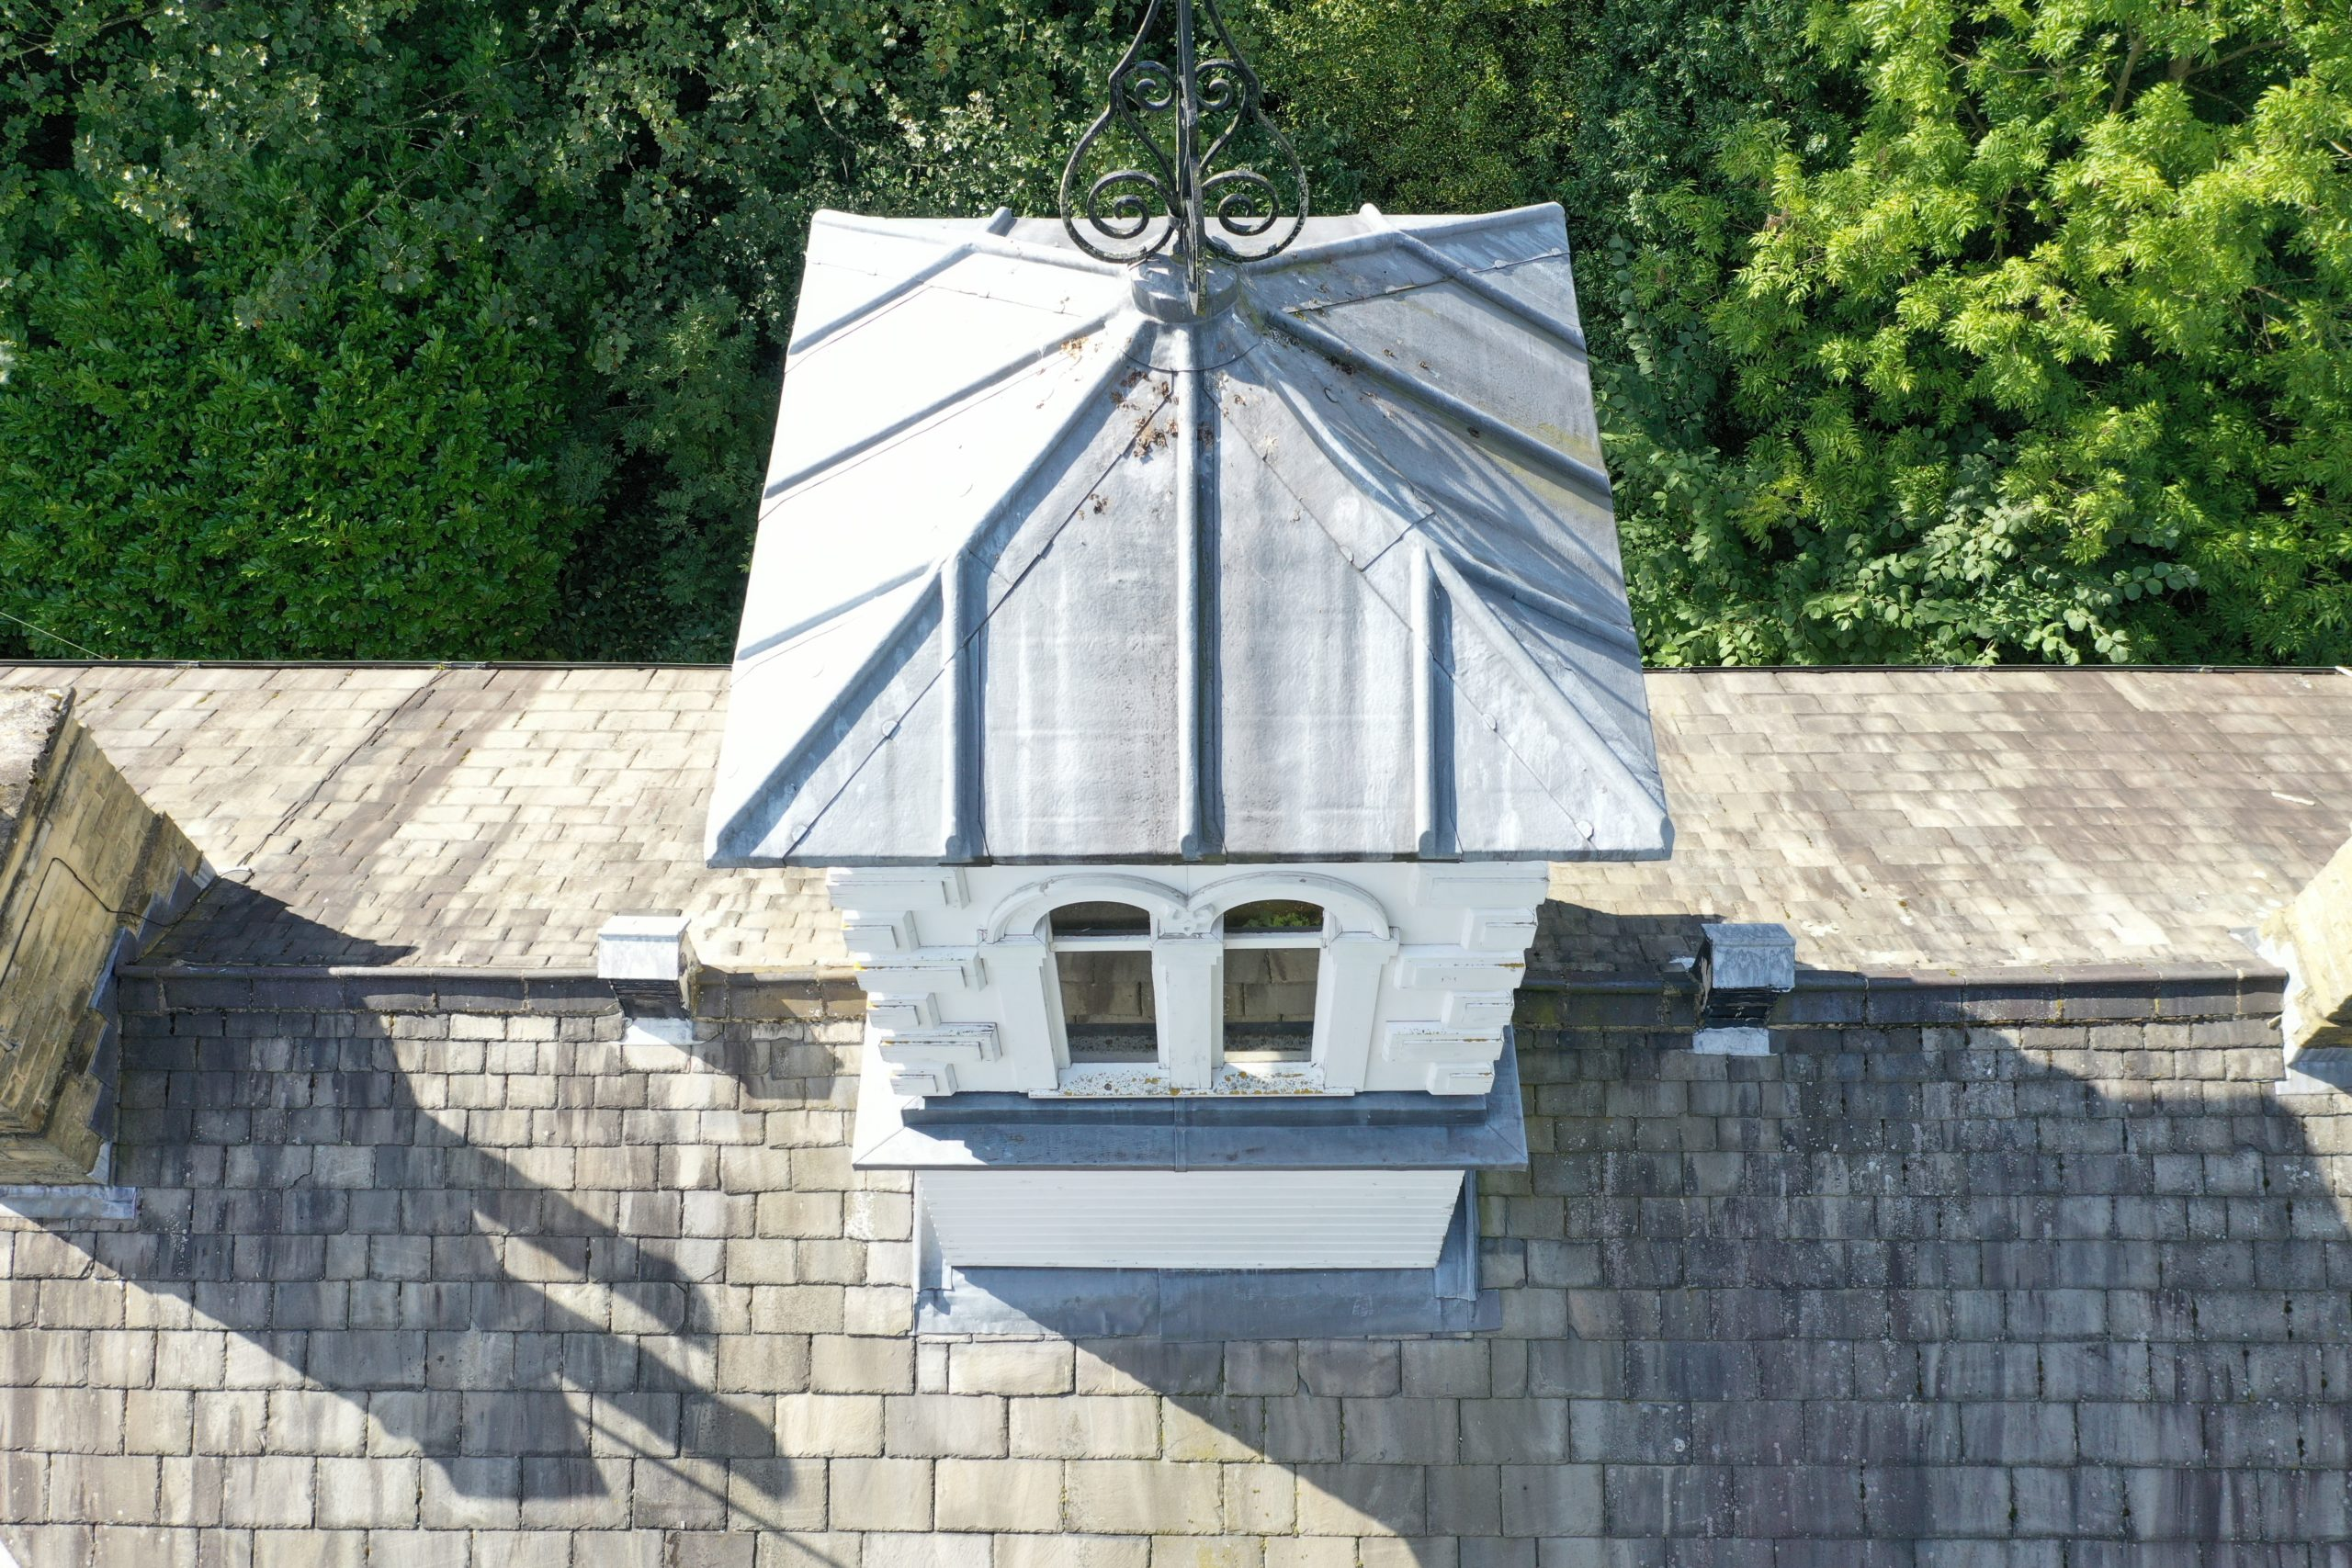 INDEPENDENT ROOF INSPECTOR NEAR ME